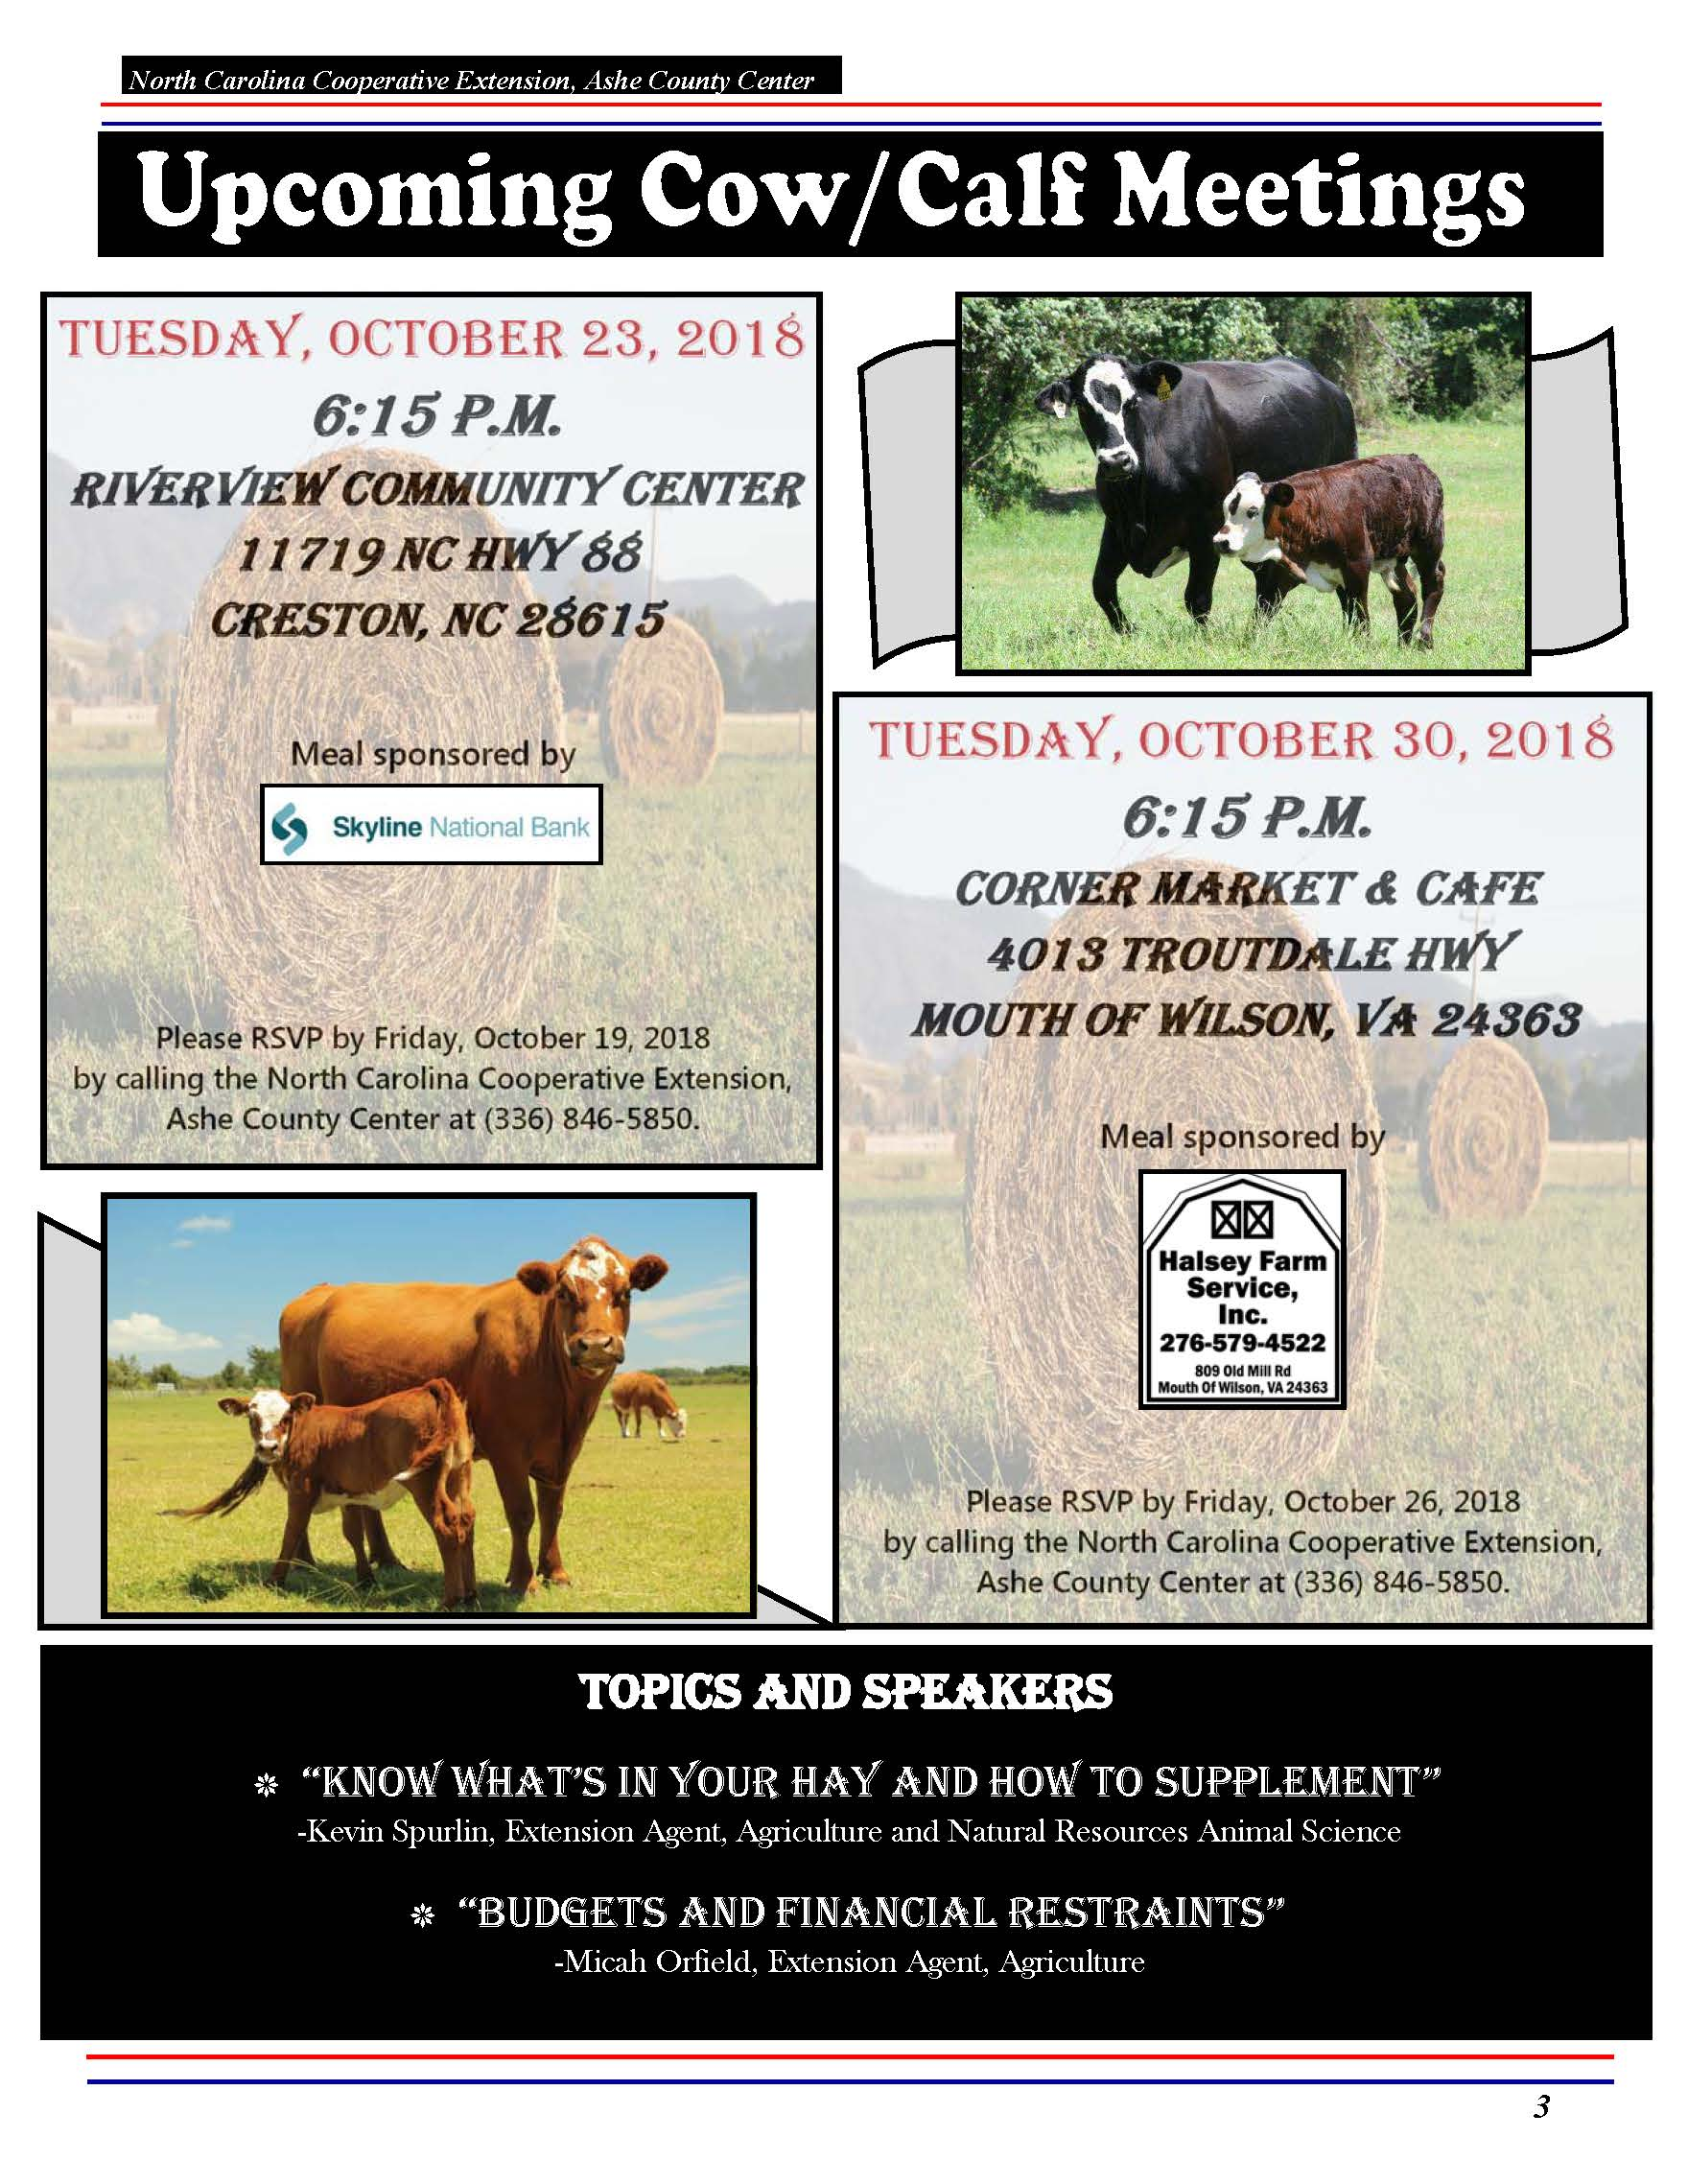 Calf & Cow Meetings flyer image